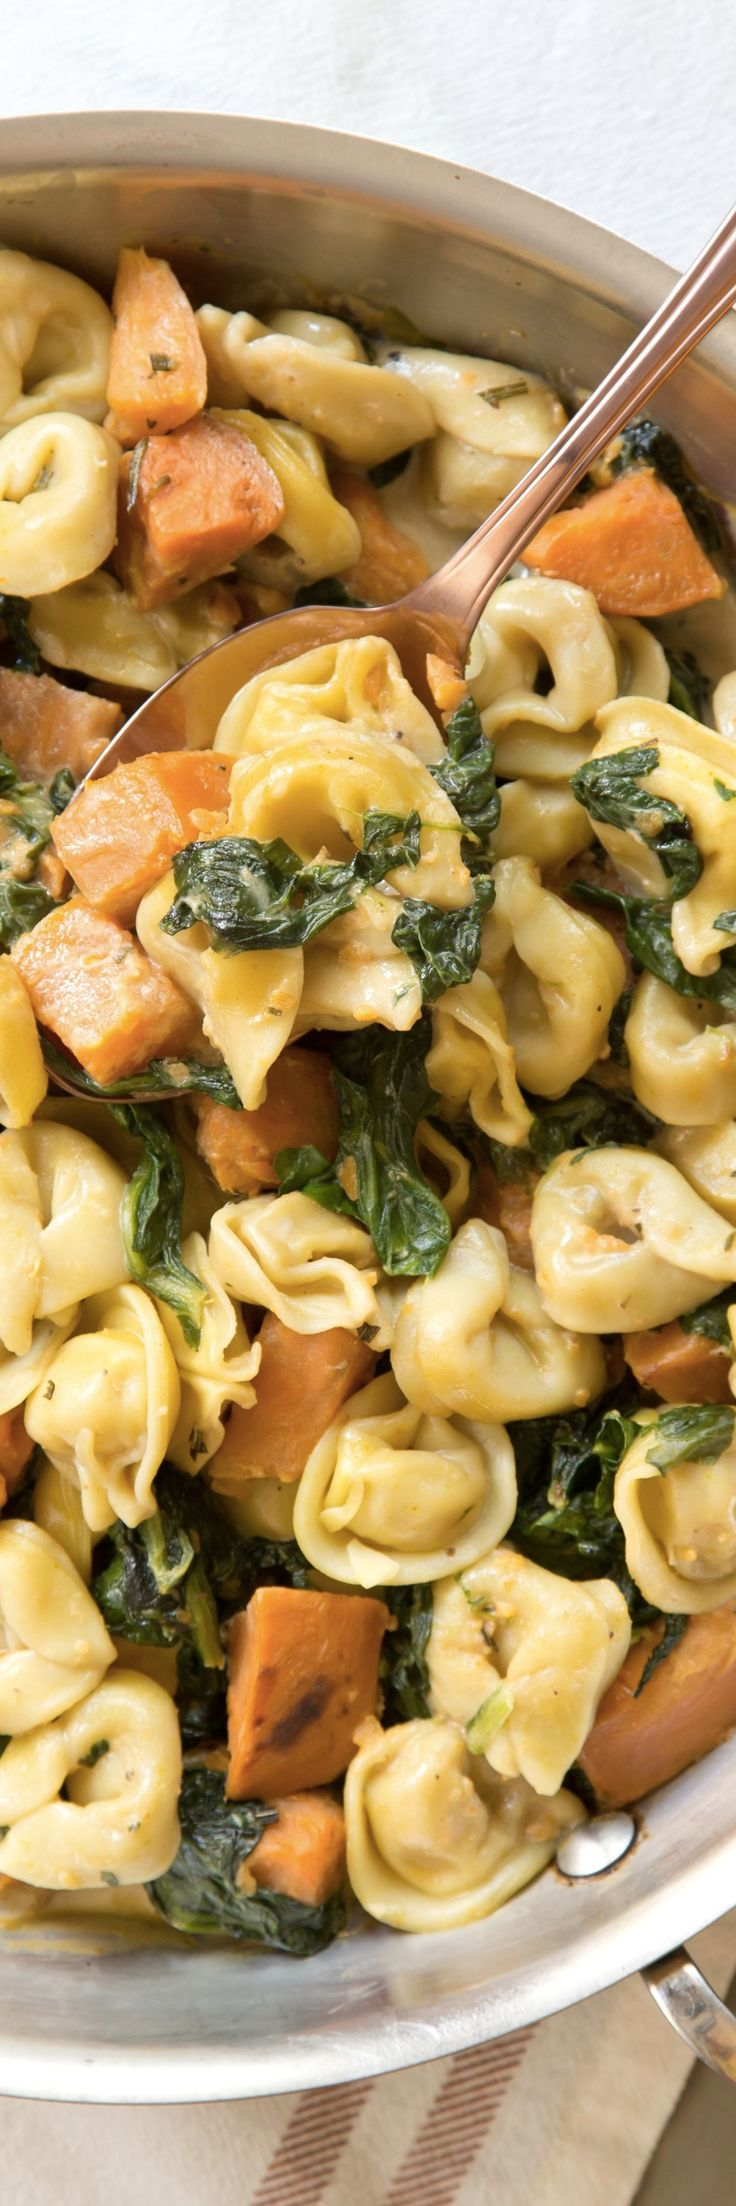 One pot creamy skillet tortellini dinner recipe. One pan pasta recipes are taking the world by storm! This vegetarian dish is a delicious meal to add to your routine of quick and easy weeknight meals!